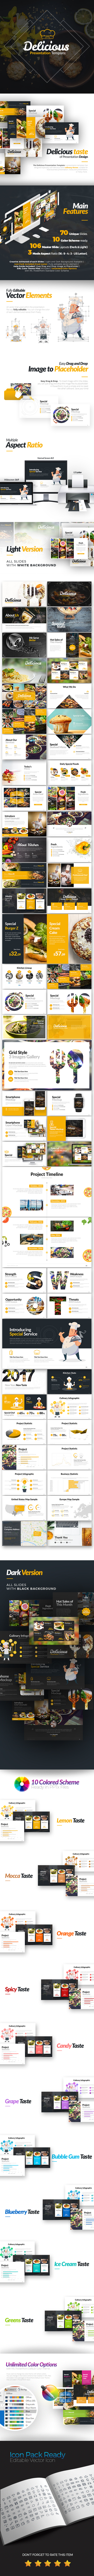 Delicious Presentation Template - Business PowerPoint Templates